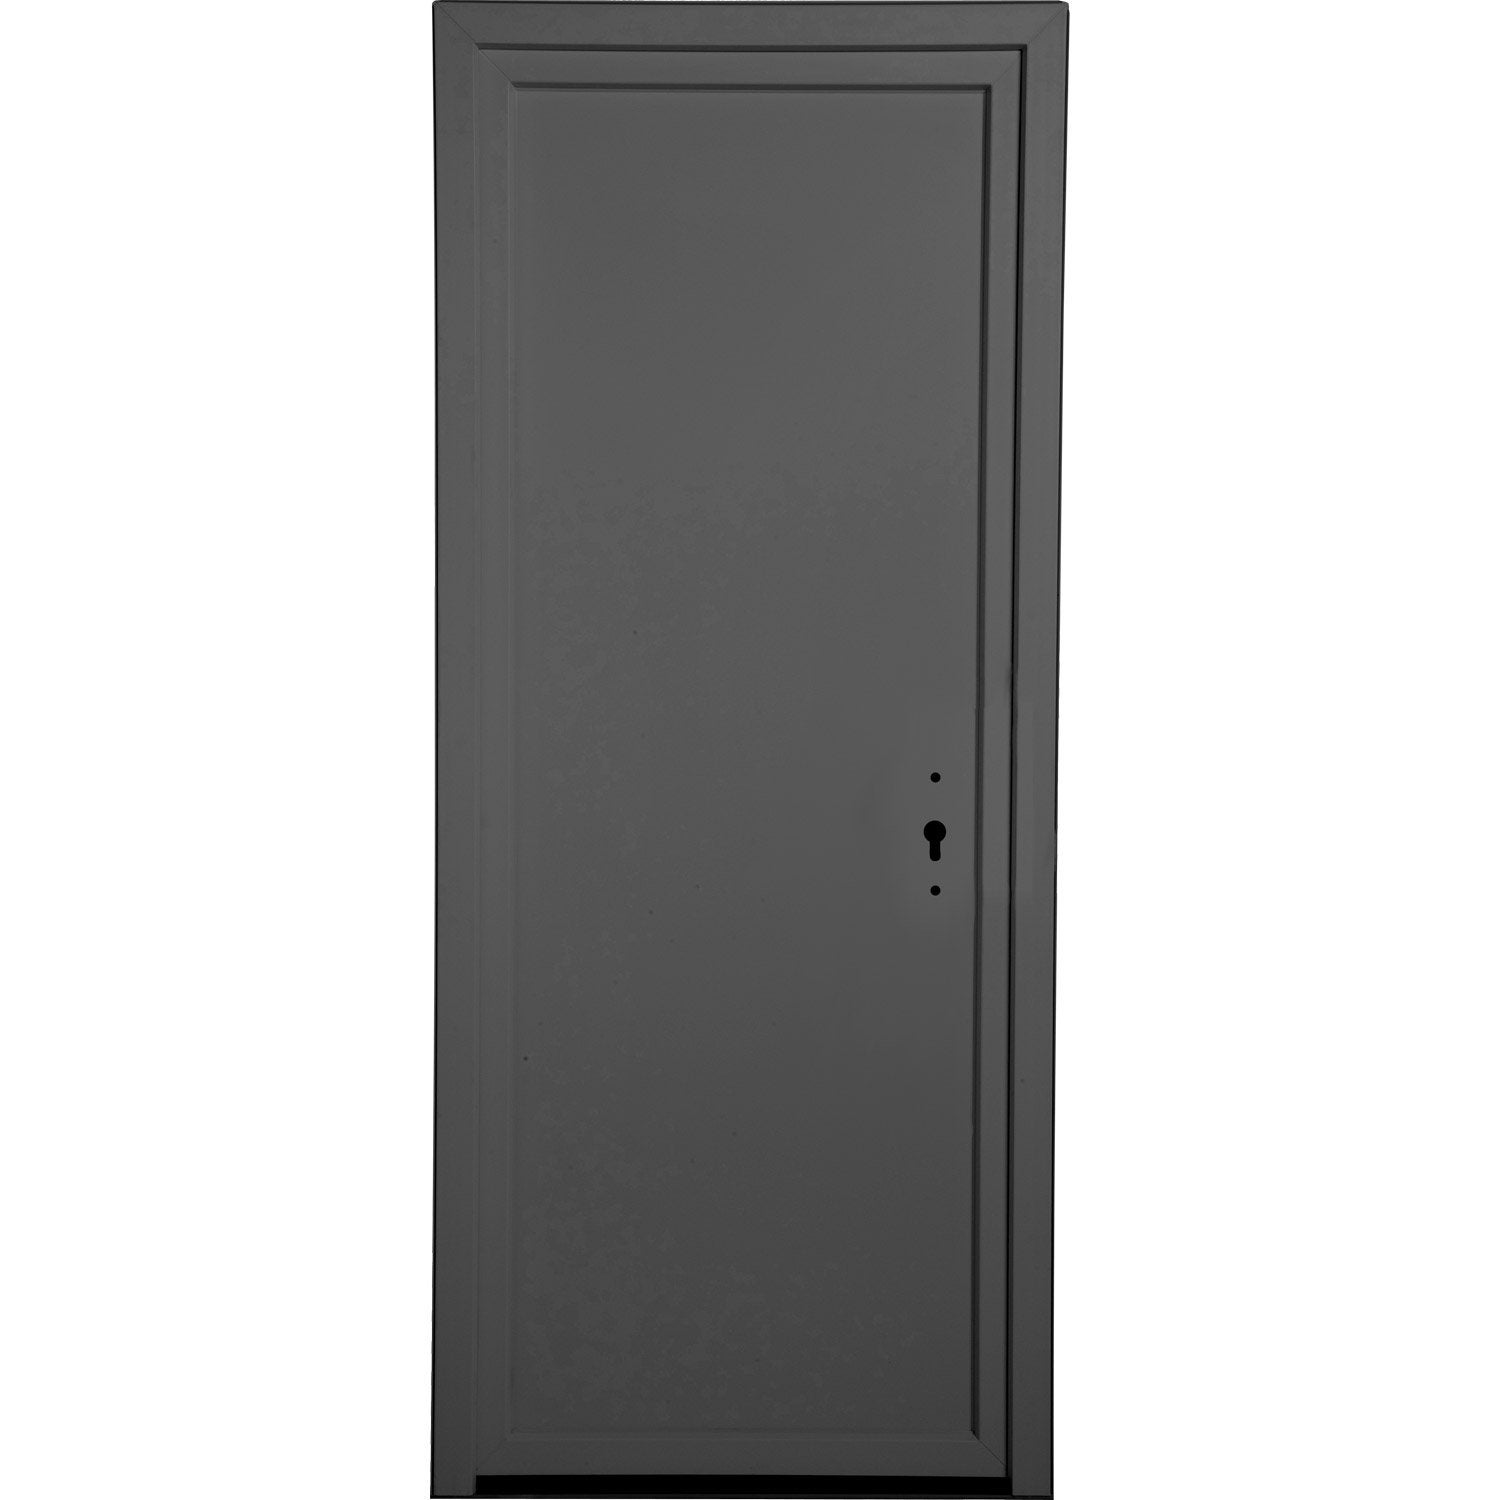 porte de service gris anthracite pvc plein h 200 x l 80. Black Bedroom Furniture Sets. Home Design Ideas